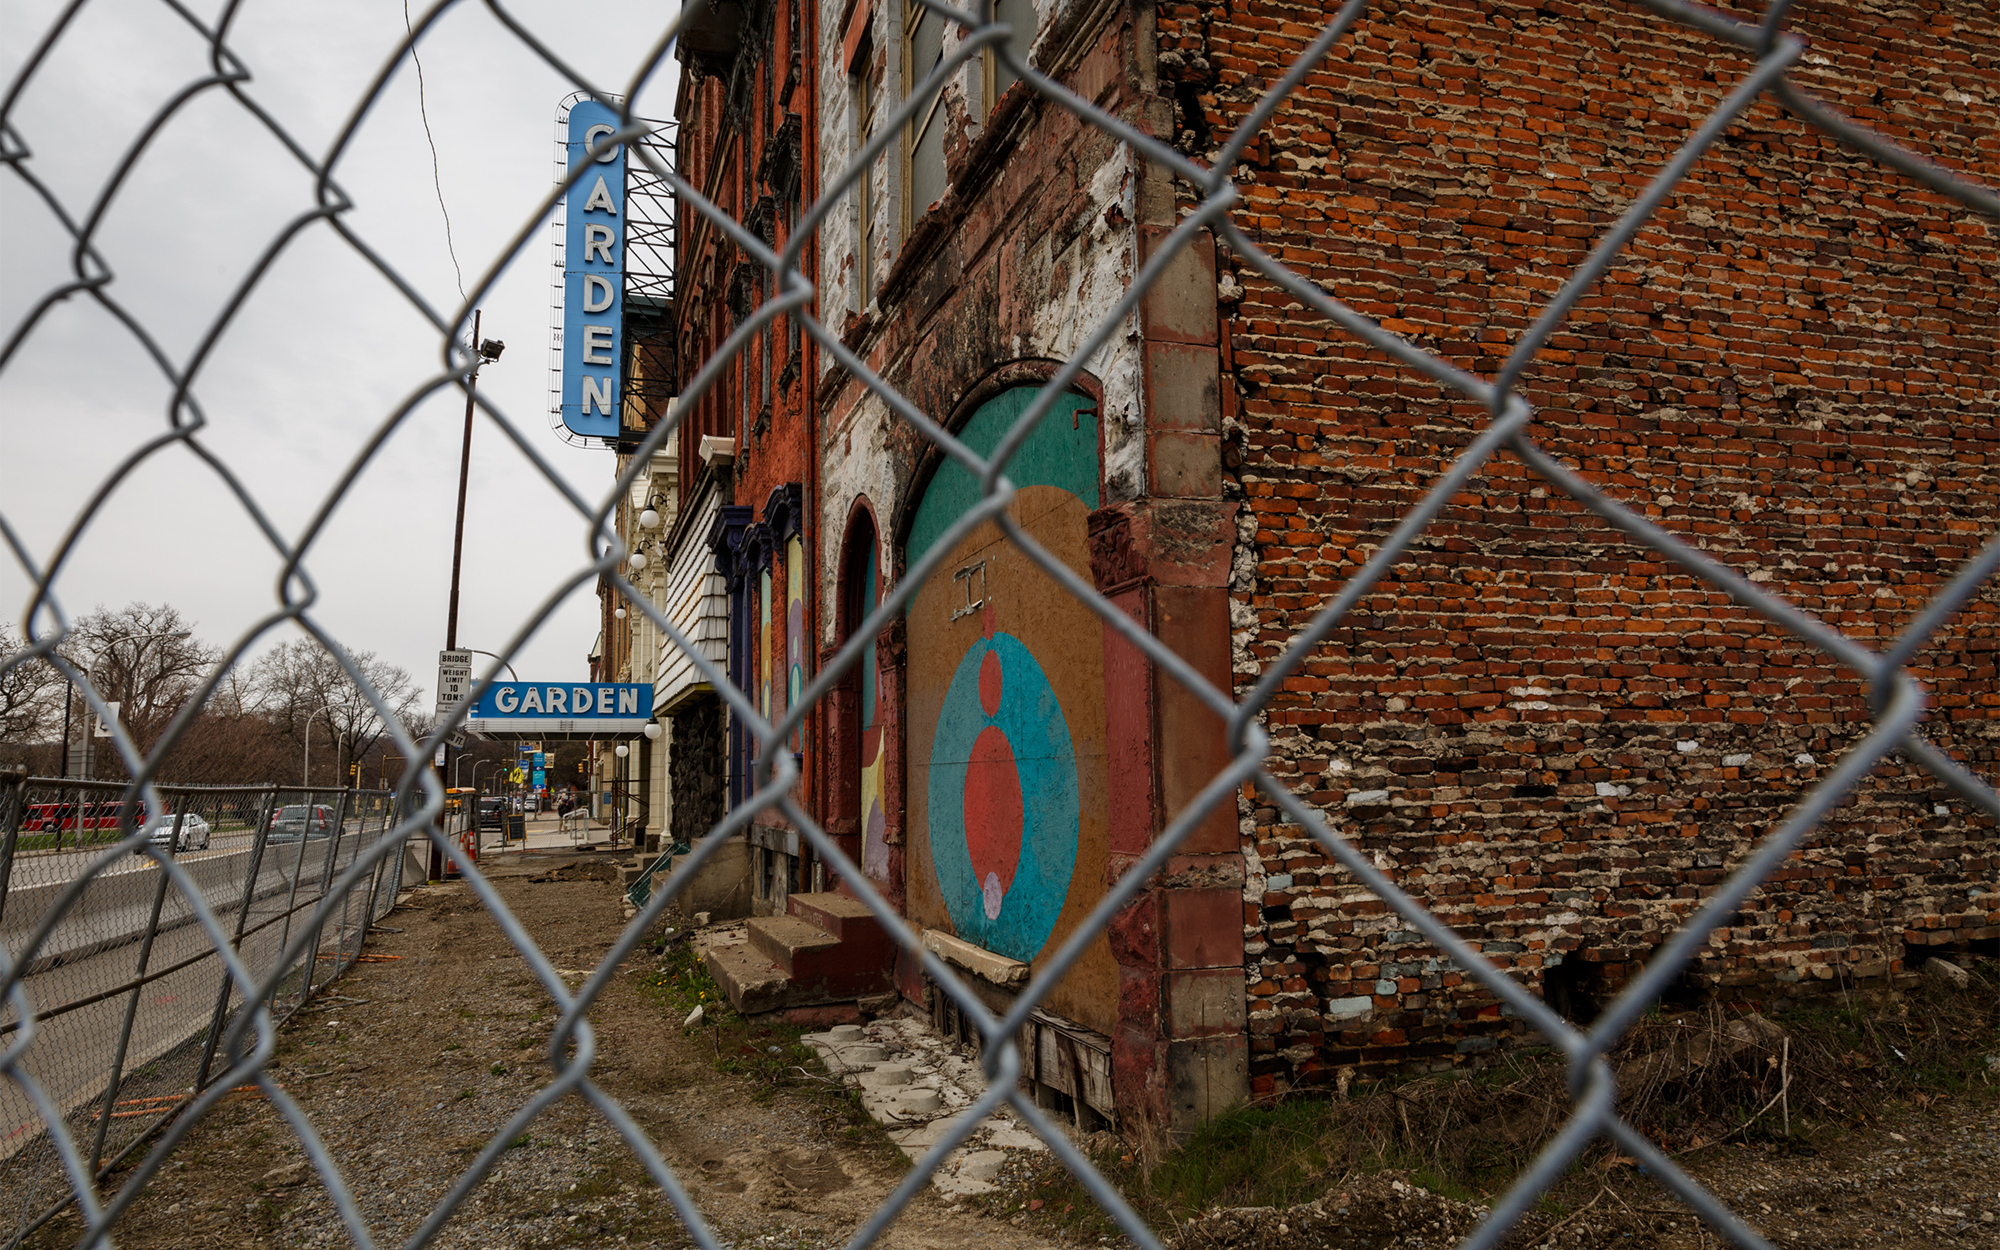 Depending on the decade, the structures at 4, 6 and 8 W. North Ave. served as doctors' offices, a bar, academic buildings and more. Today, they're vacant, and the only change in the last decade has been more decay. (Photo by Maranie Rae Staab/PublicSource)